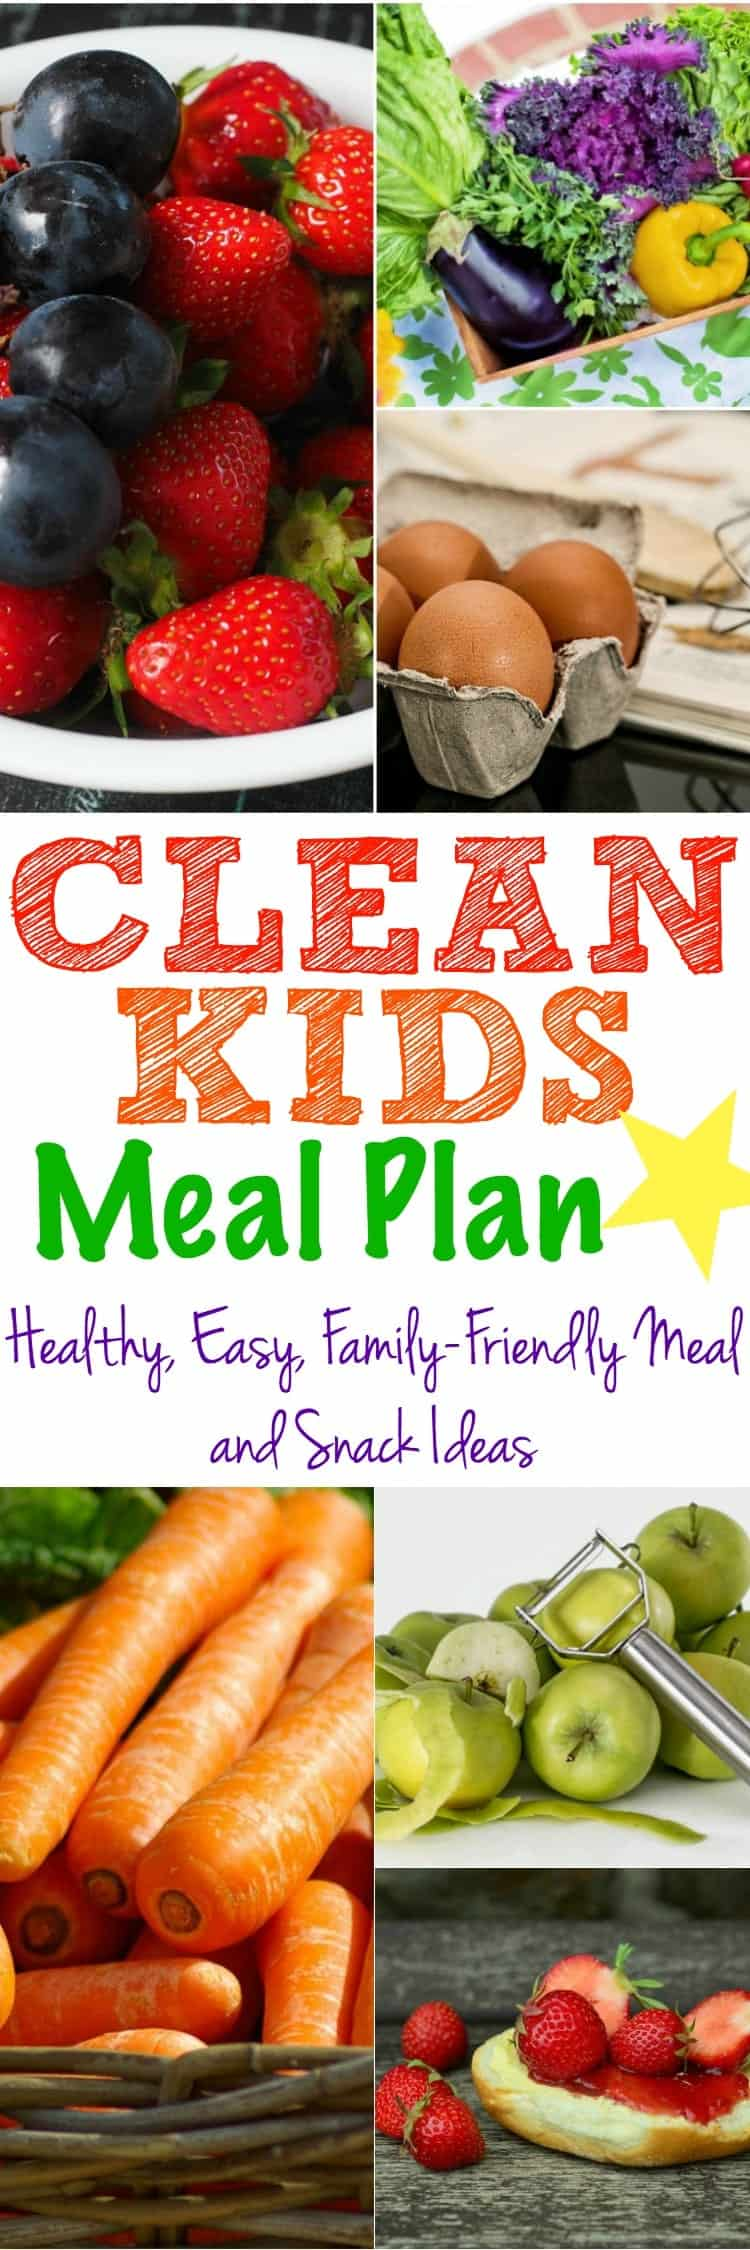 clean kids meal plan the seasoned mom. Black Bedroom Furniture Sets. Home Design Ideas